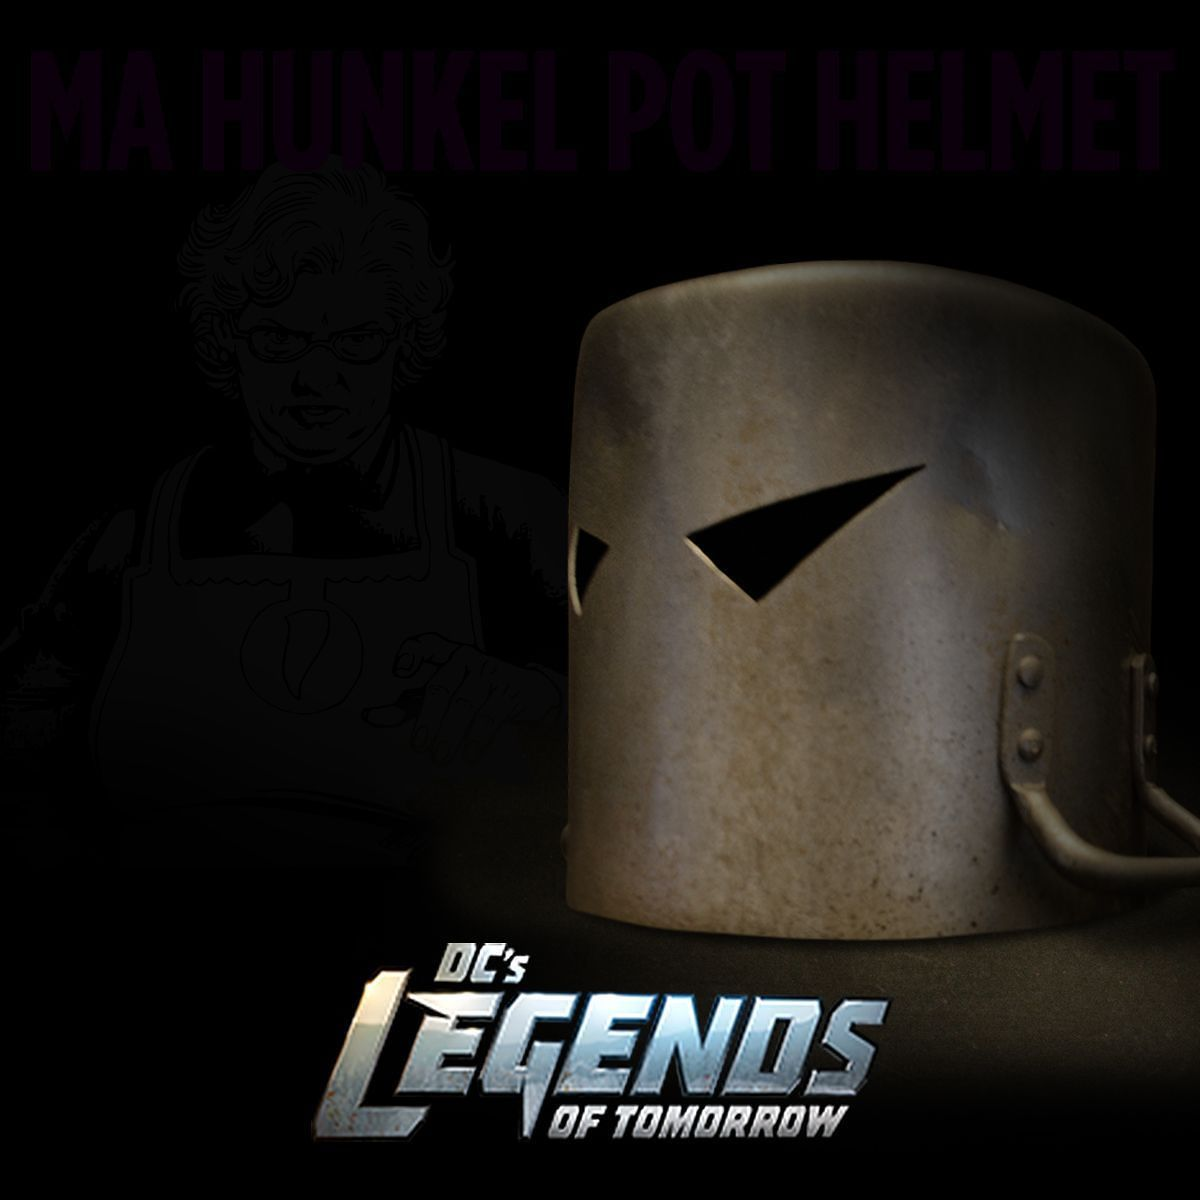 The armor may be DIY but this guy is no pushover--come to think of it he's not a guy at all. So who's under that pot...? Screenshot this image and use filters to reveal the answer and share your findings with #LoTEasterEggs! @cw_legendsoftomorrow: Thursday at 8/7c on The CW. by dccomics